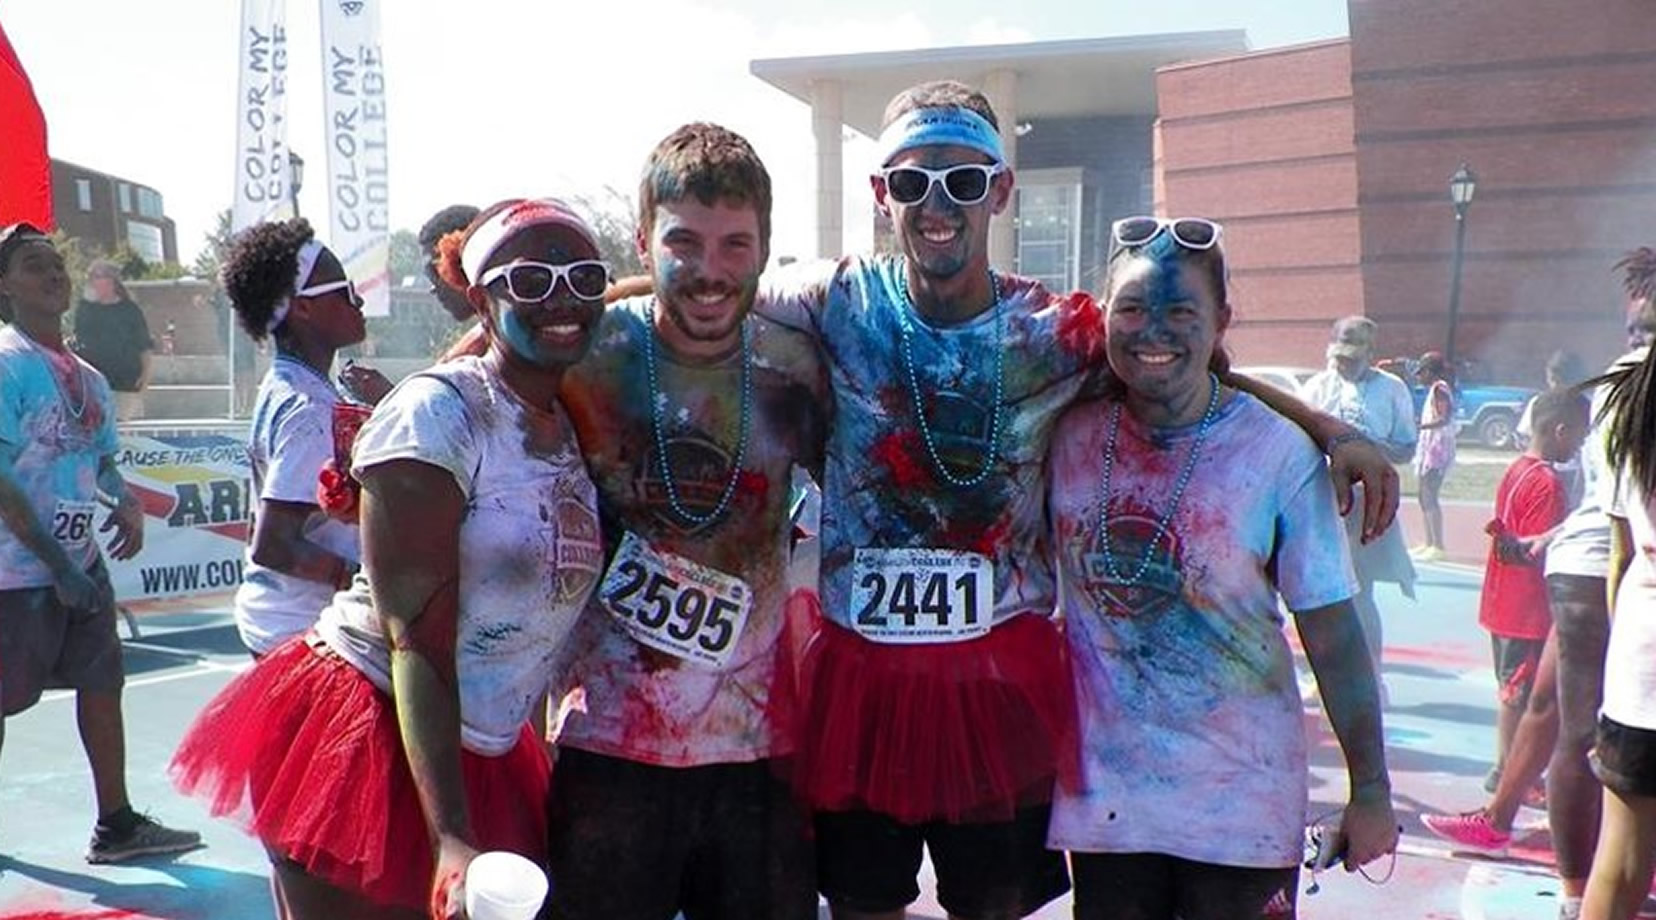 Fun Times at the Hornet Hustle 5K Color Run